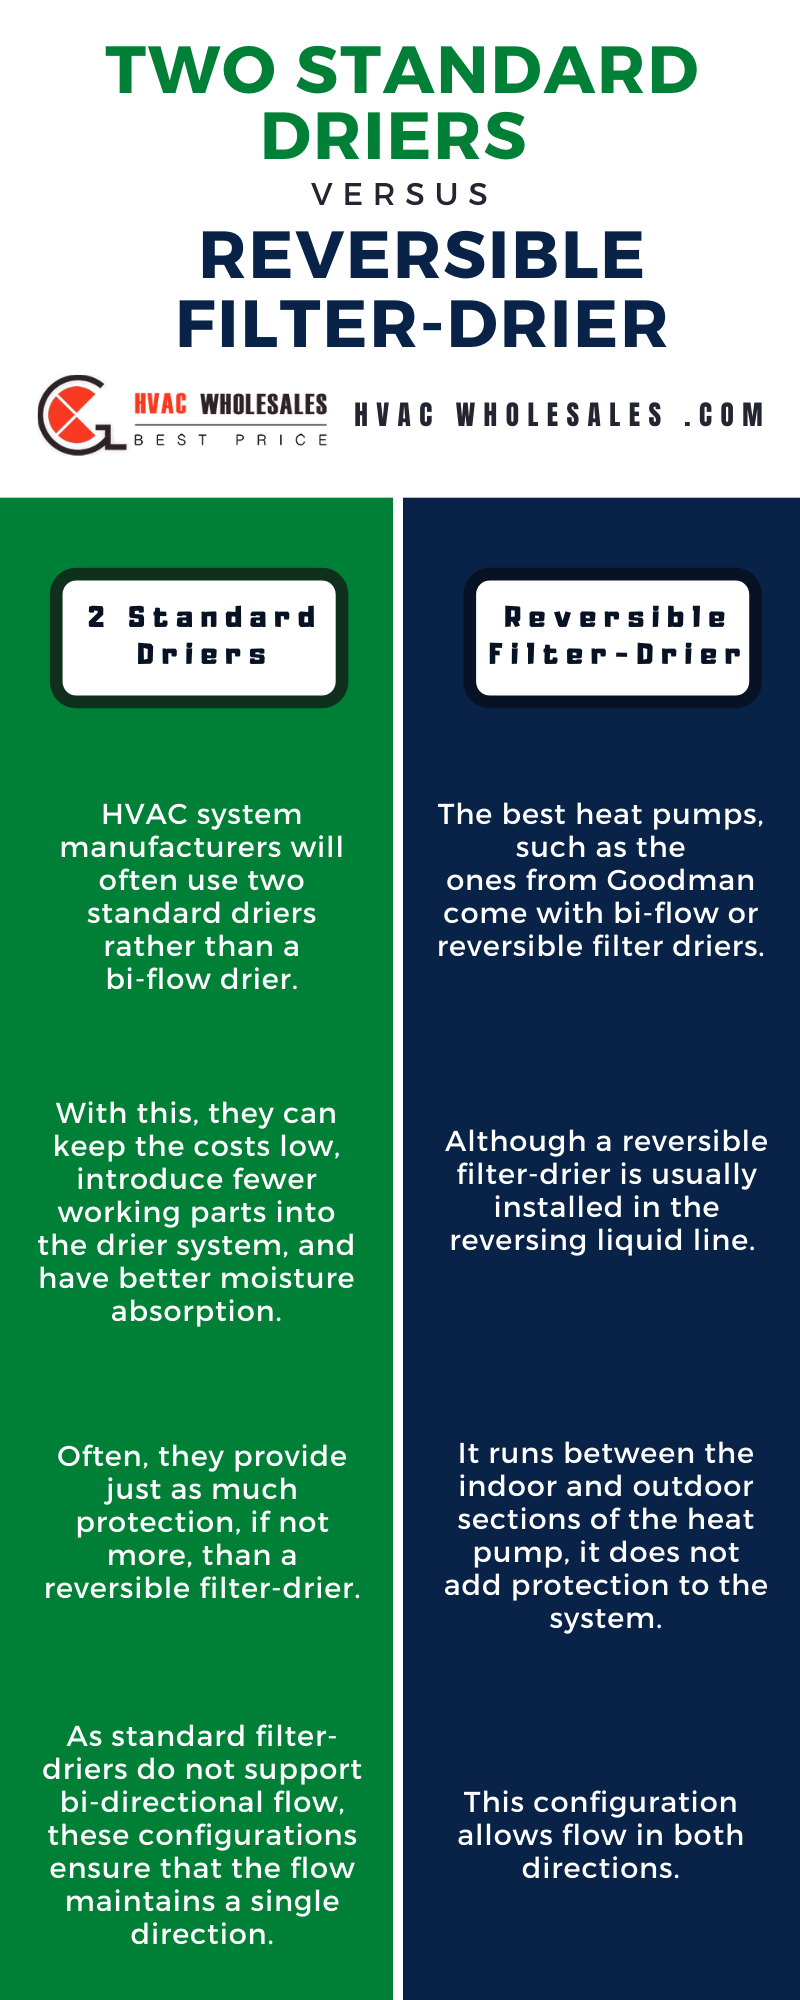 Two Standard Driers vs Reversible Filter-Drier for Heat Pumps